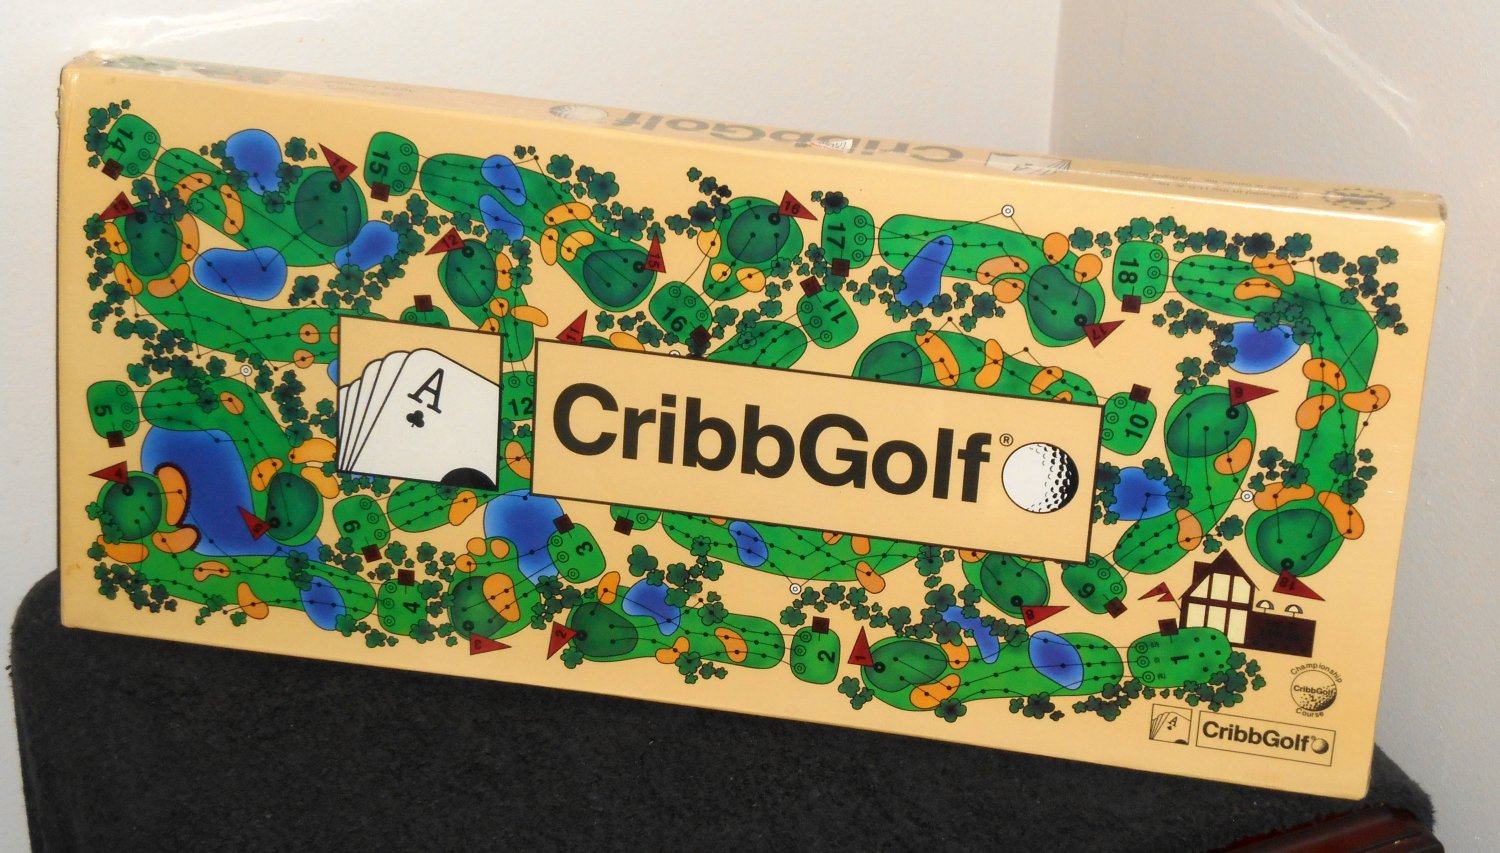 CribbGolf The Board Game of Cribbage and Golf 1992 New NIB Factory Sealed JK Games